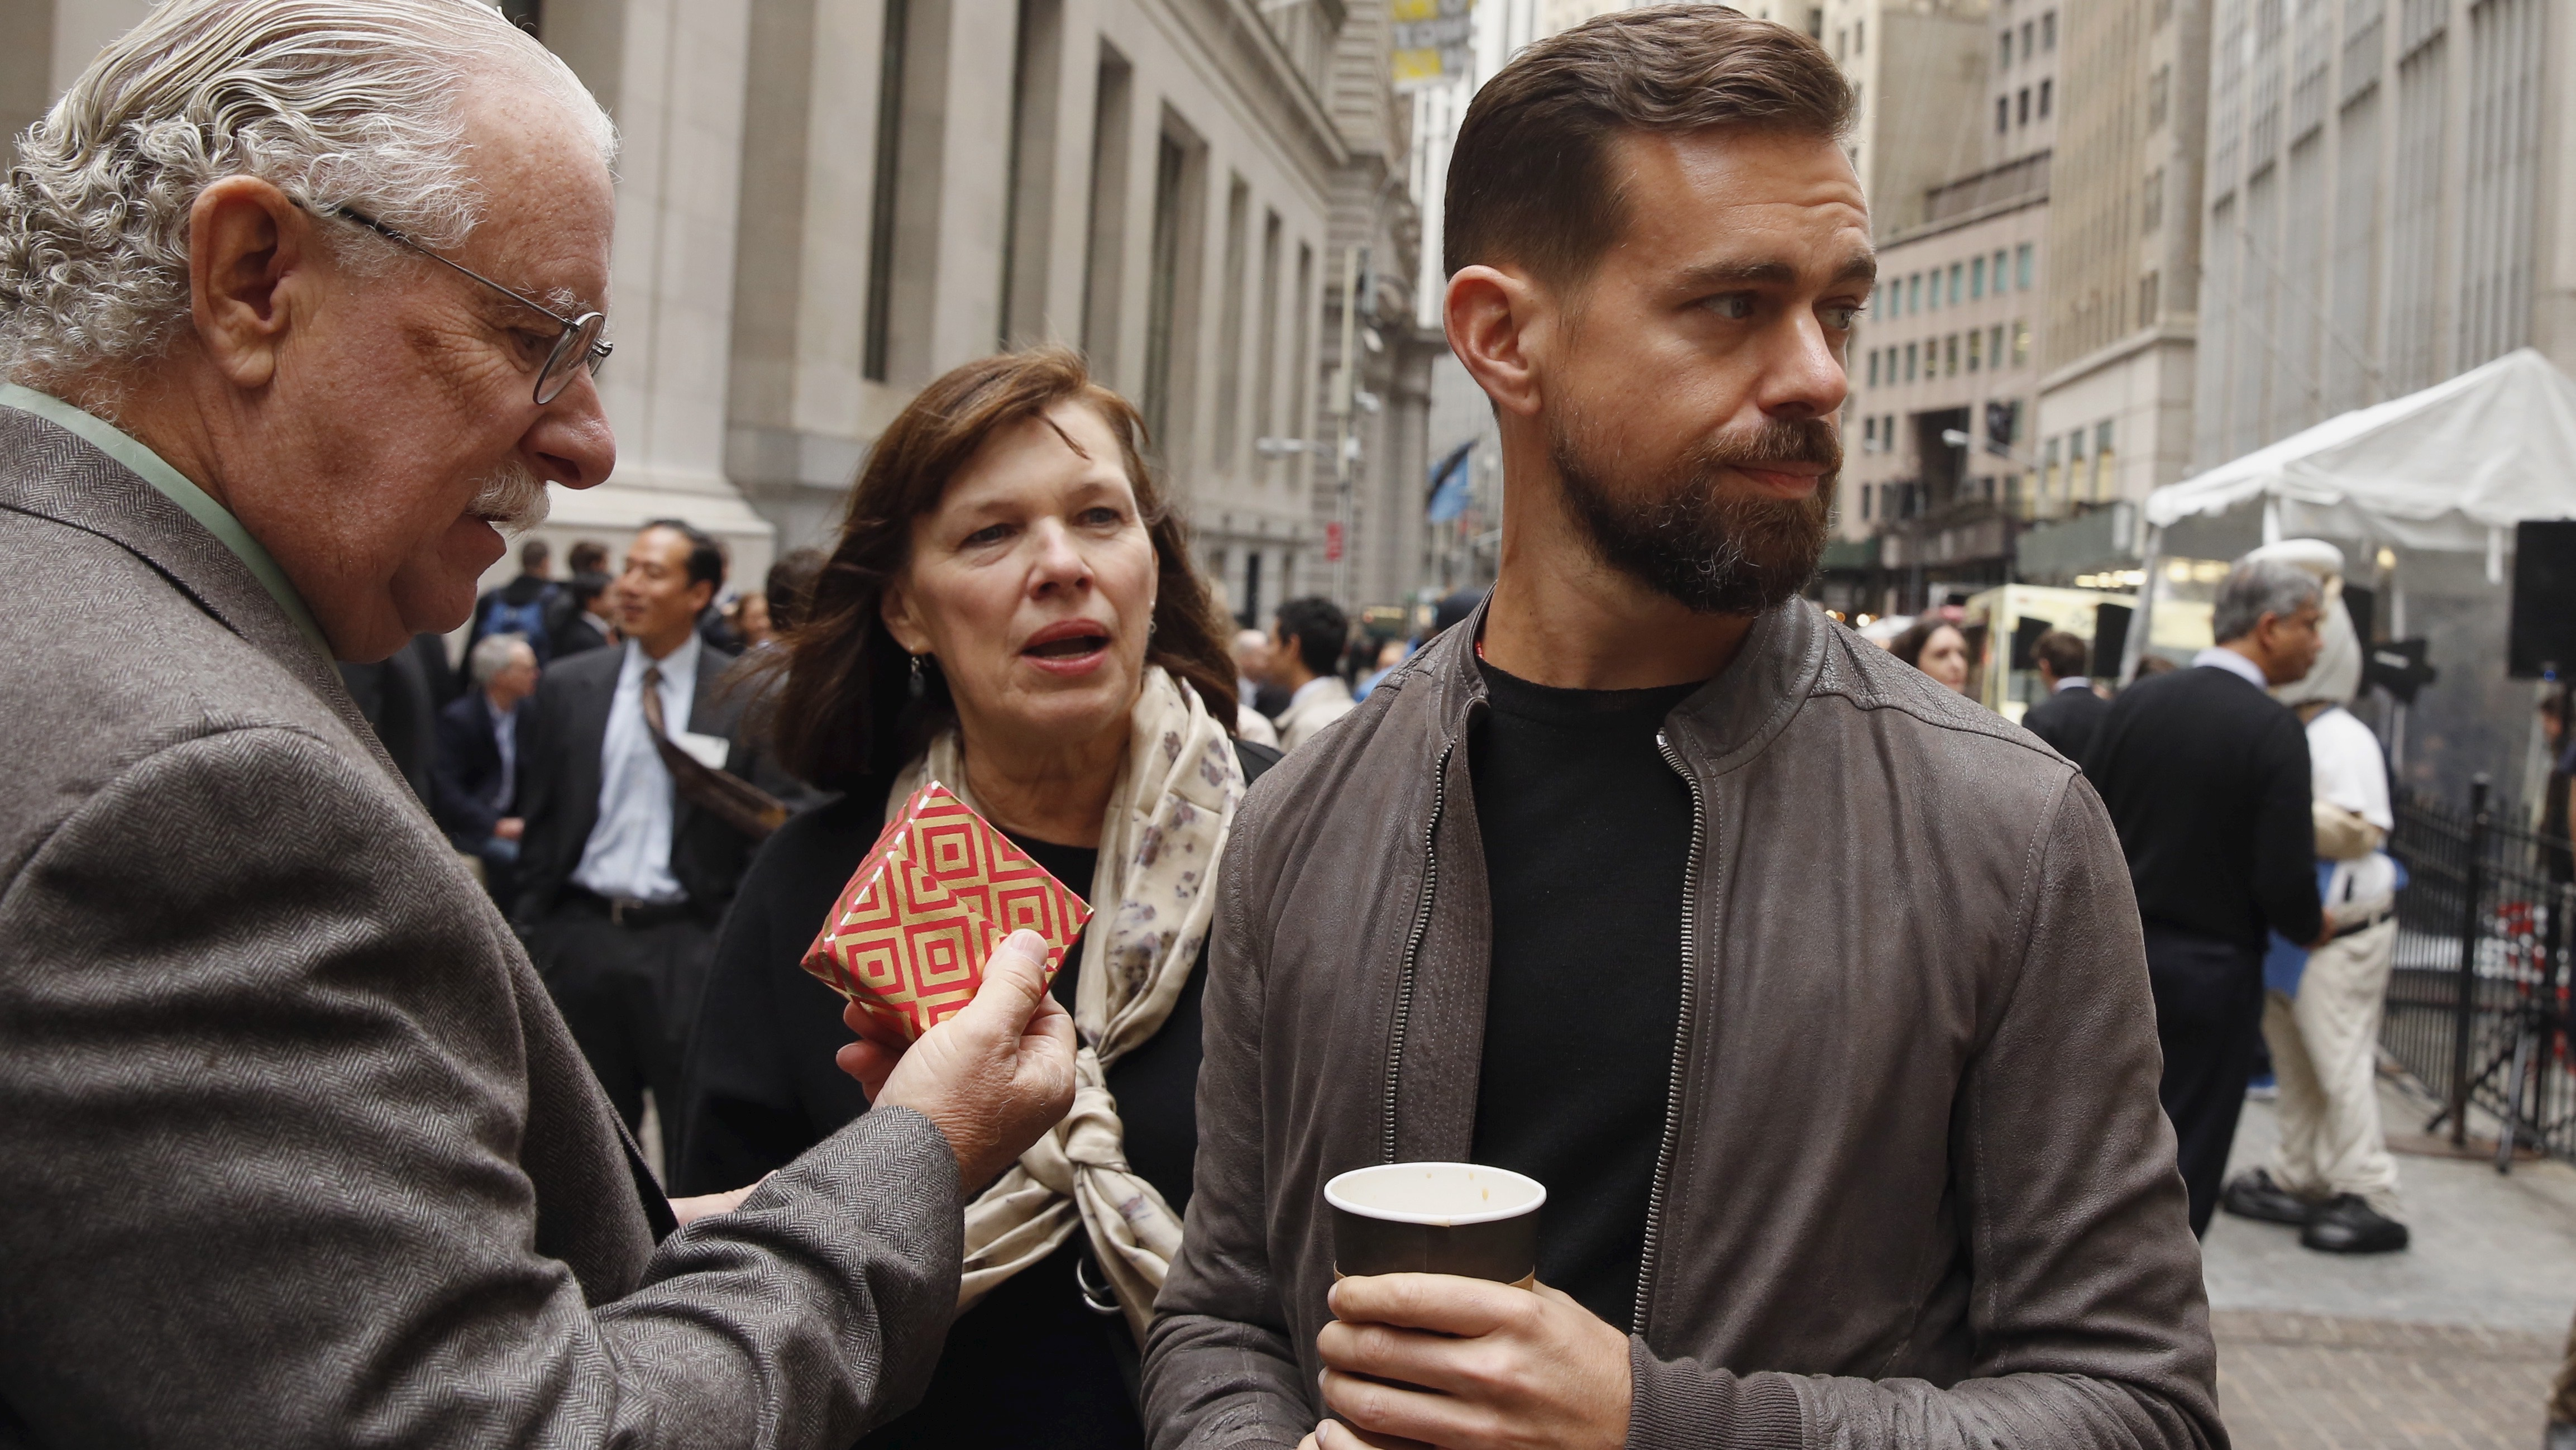 Jack Dorsey, CEO of Square and CEO of Twitter